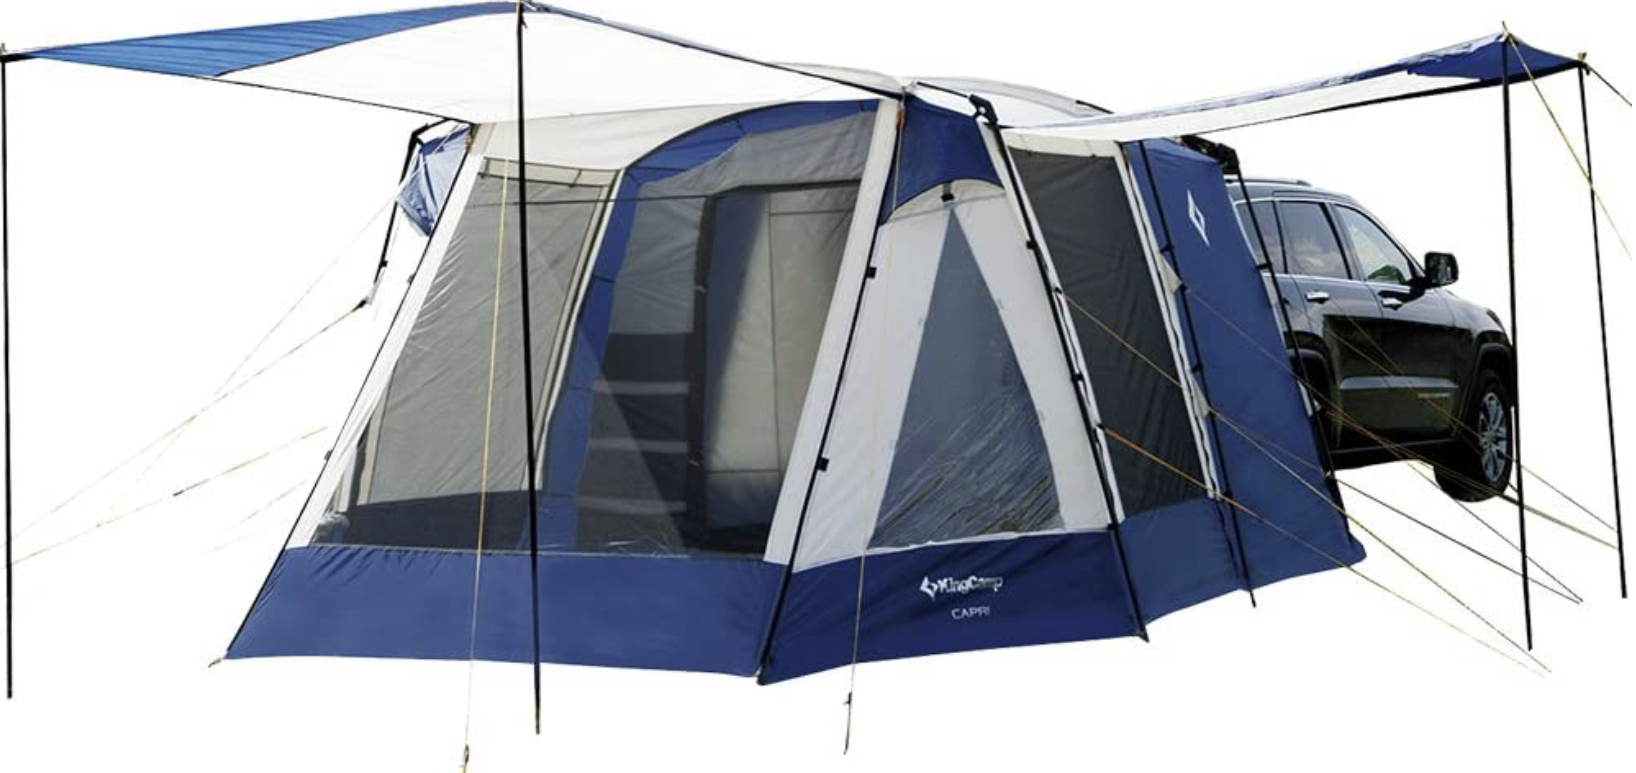 The Complete Guide to Tents That Attach to Suvs 8